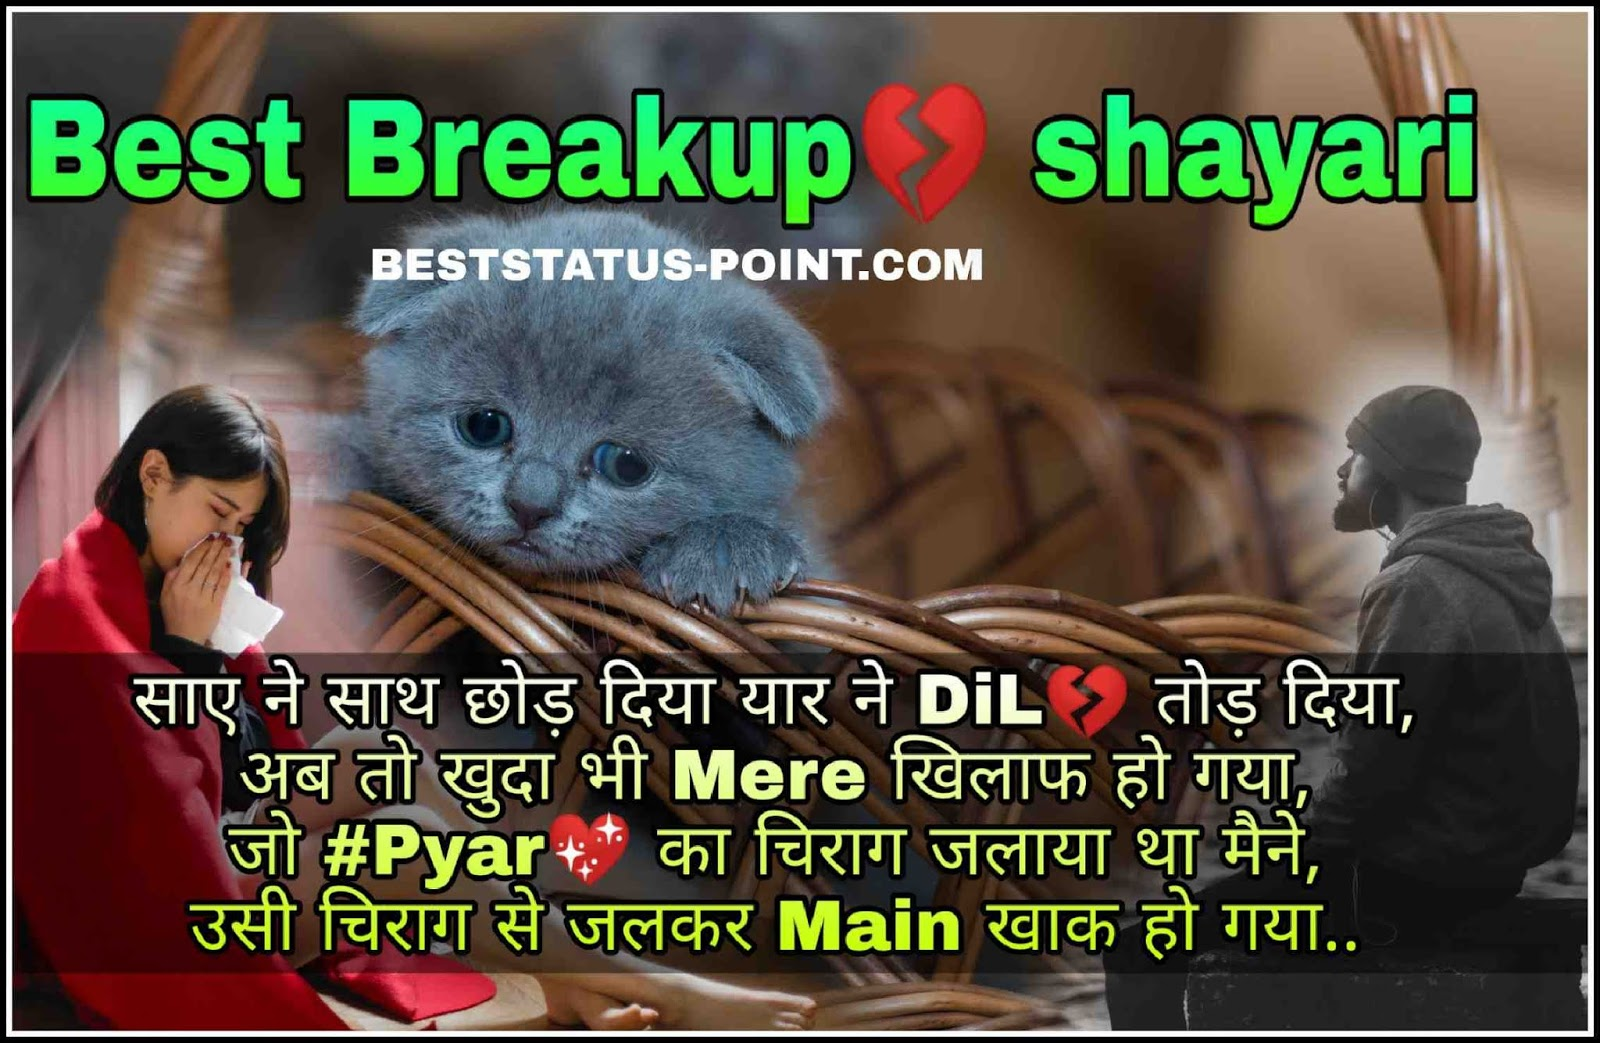 Breakup_Shayari_in_Hindi